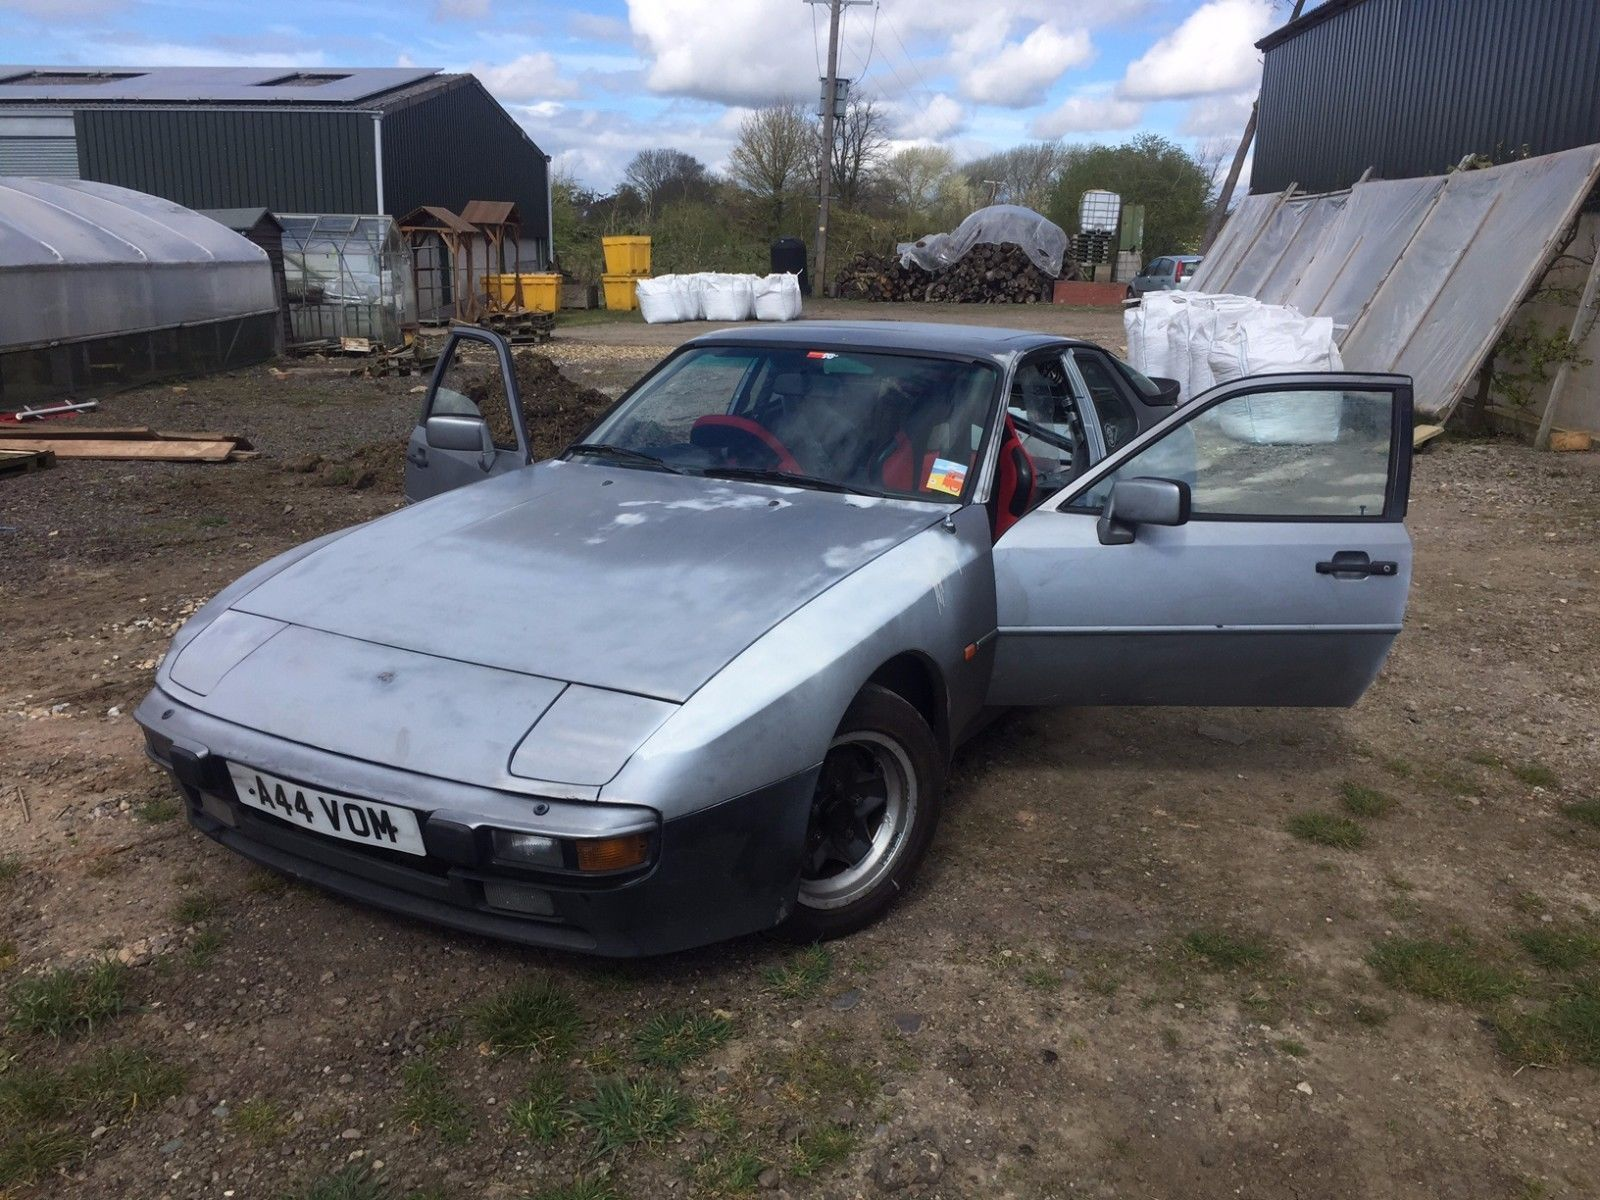 Porsche 944 Track Day Project For Sale (1983) Sensible offers ...